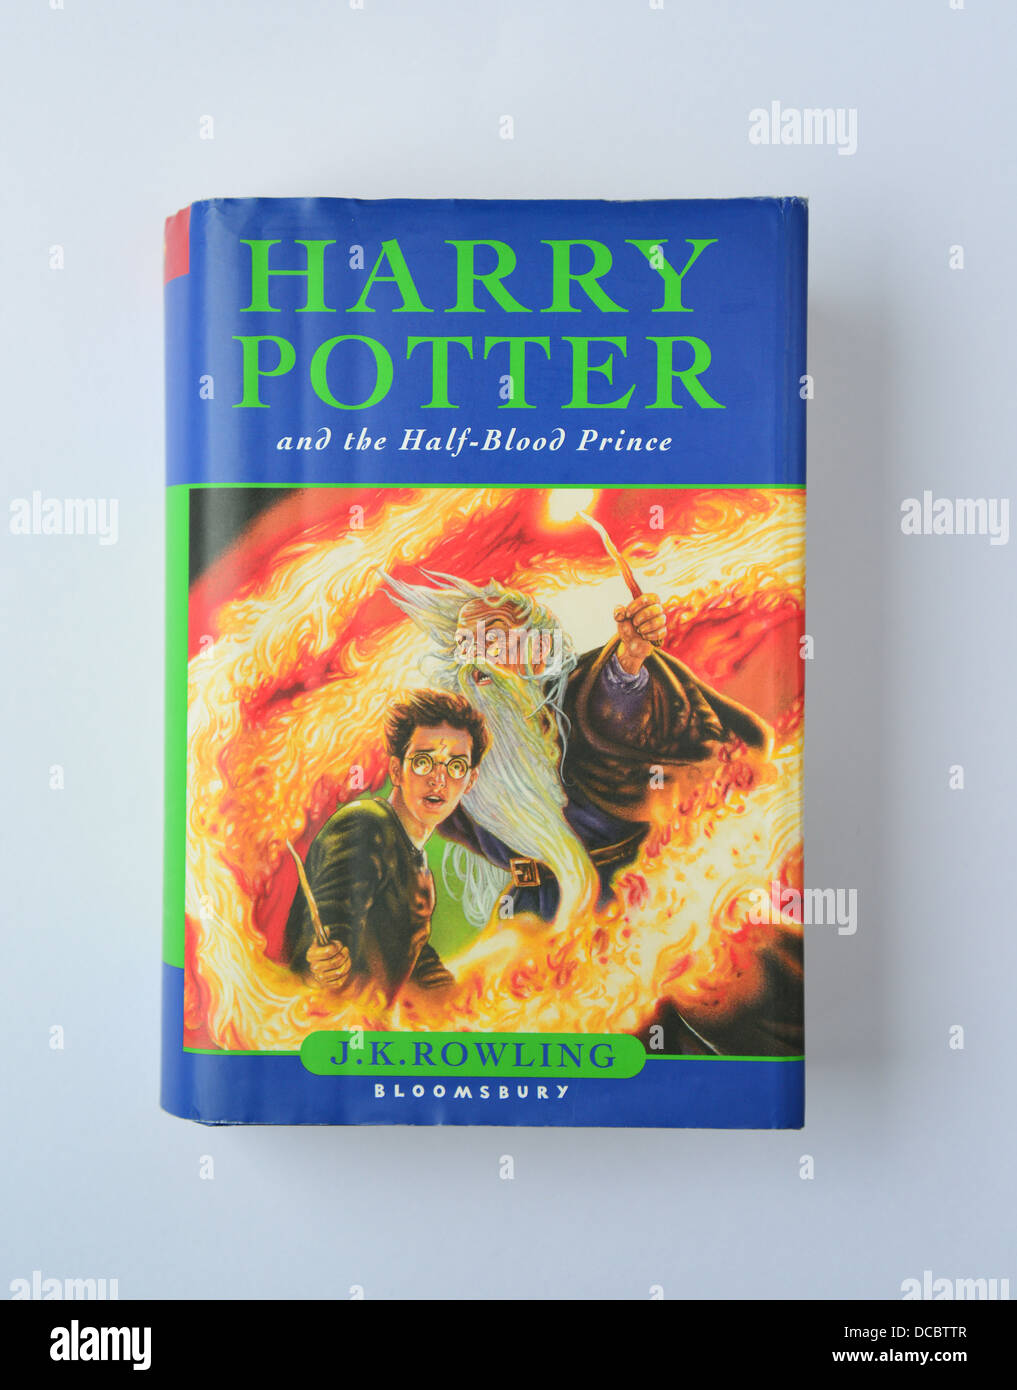 J.K.Rowling's 'Harry Potter and the Half-Blooded Prince' book, Surrey, England, United Kingdom - Stock Image